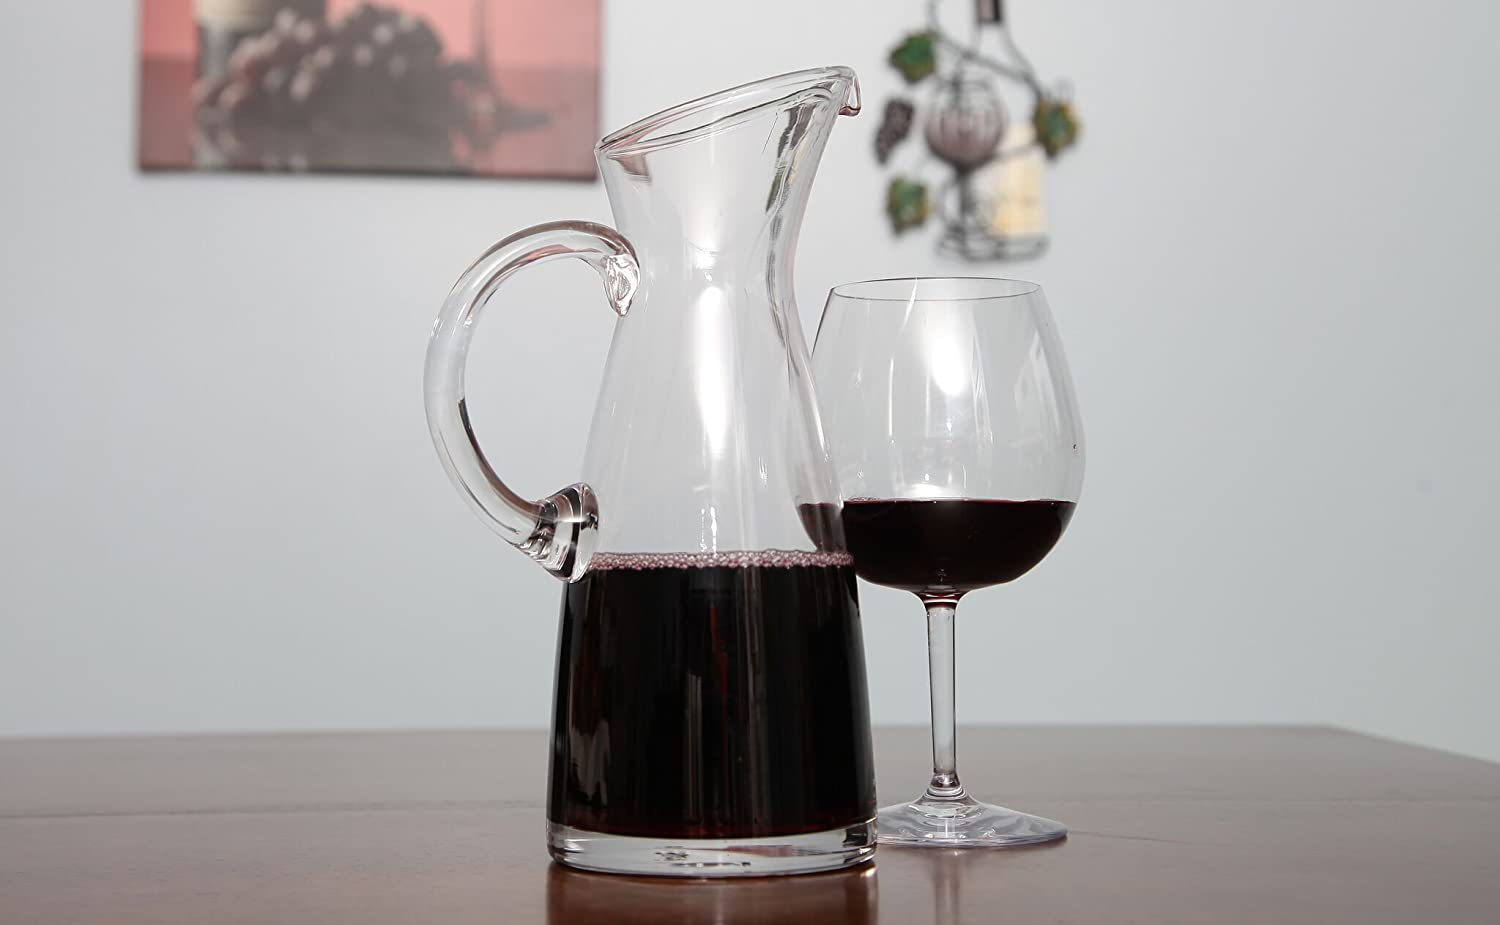 Lily/'s Home SW1030 Lilys Home Glass Water and Wine Carafe Ideal as a Cold Beverage or Juice Decanter with Large Comfortable Handle and Spout Designed to Prevent Drips 10 1//2 Tall x 4 Wide Base